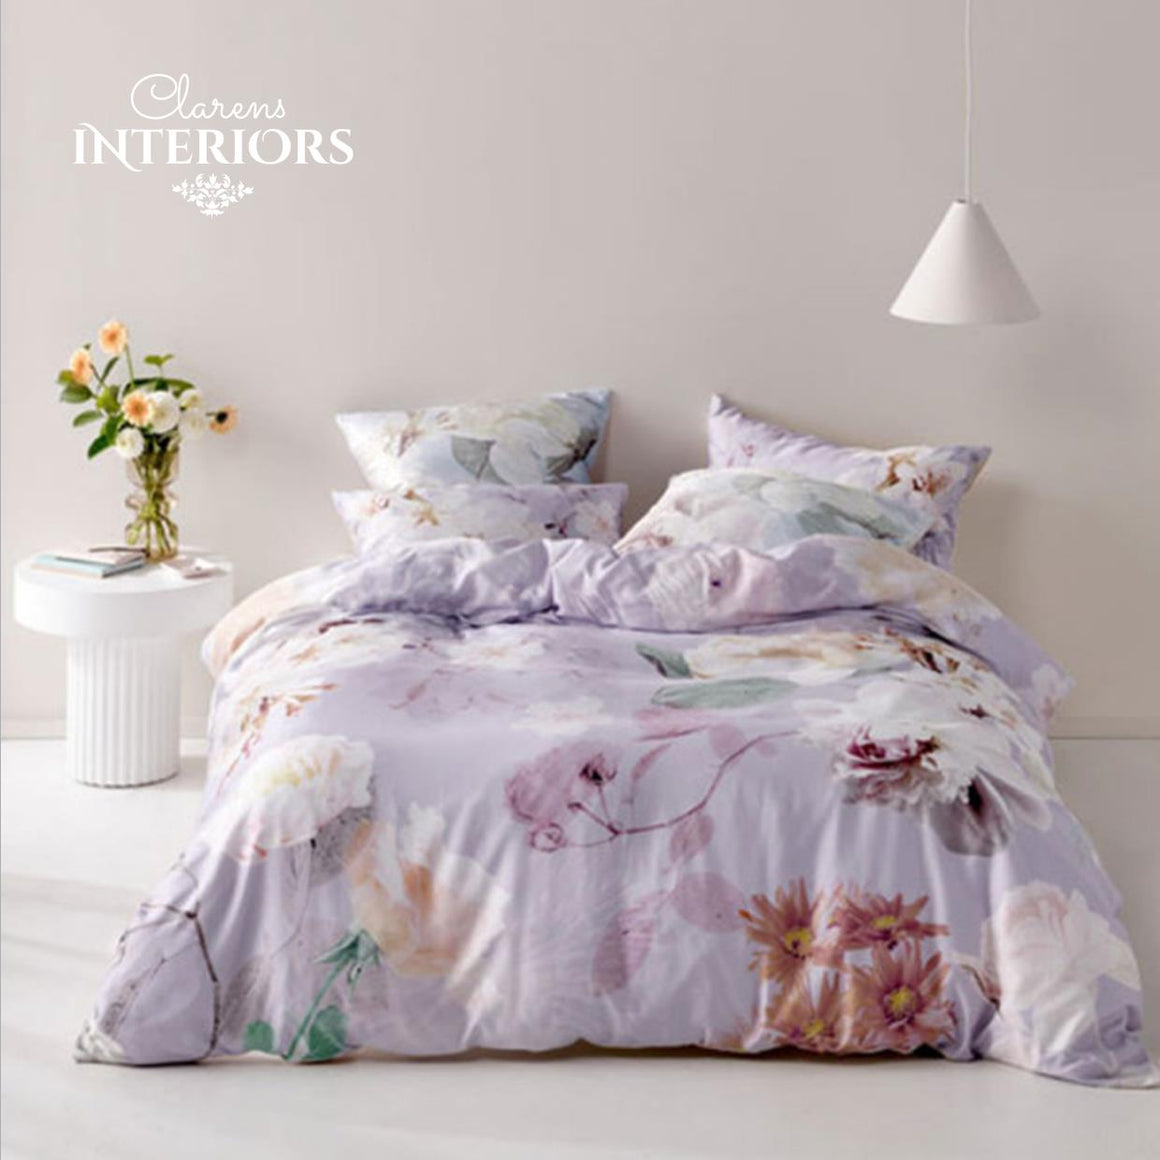 Anella duvet cover set